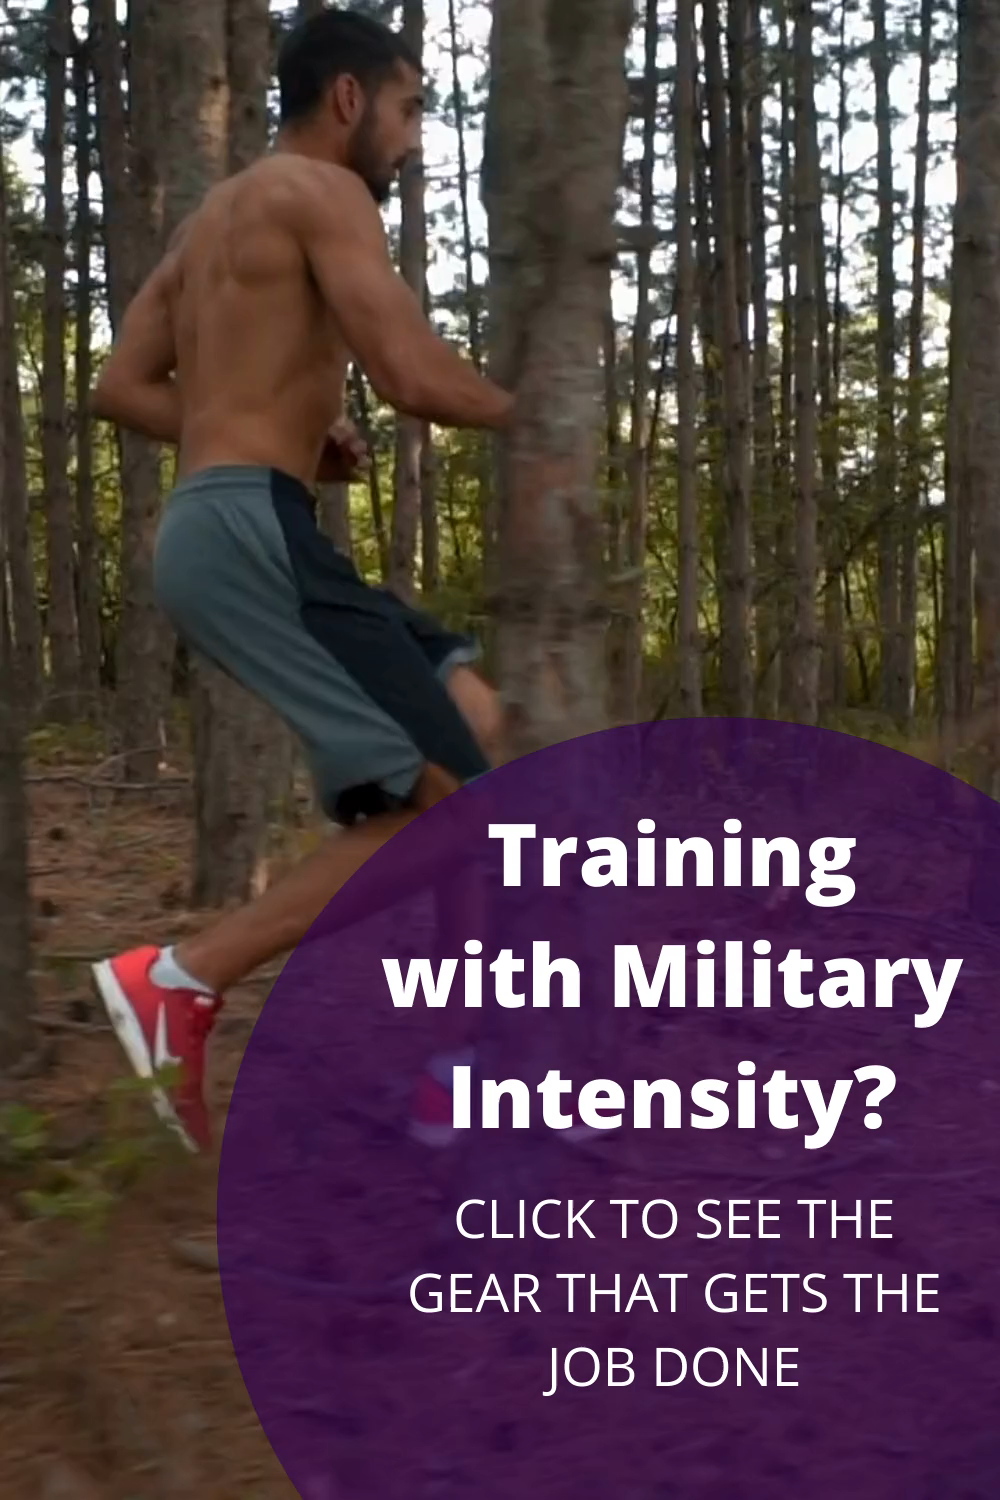 At Home Workouts Should be Gut-Wrenching, Not Bank-Breaking -   fitness Training military